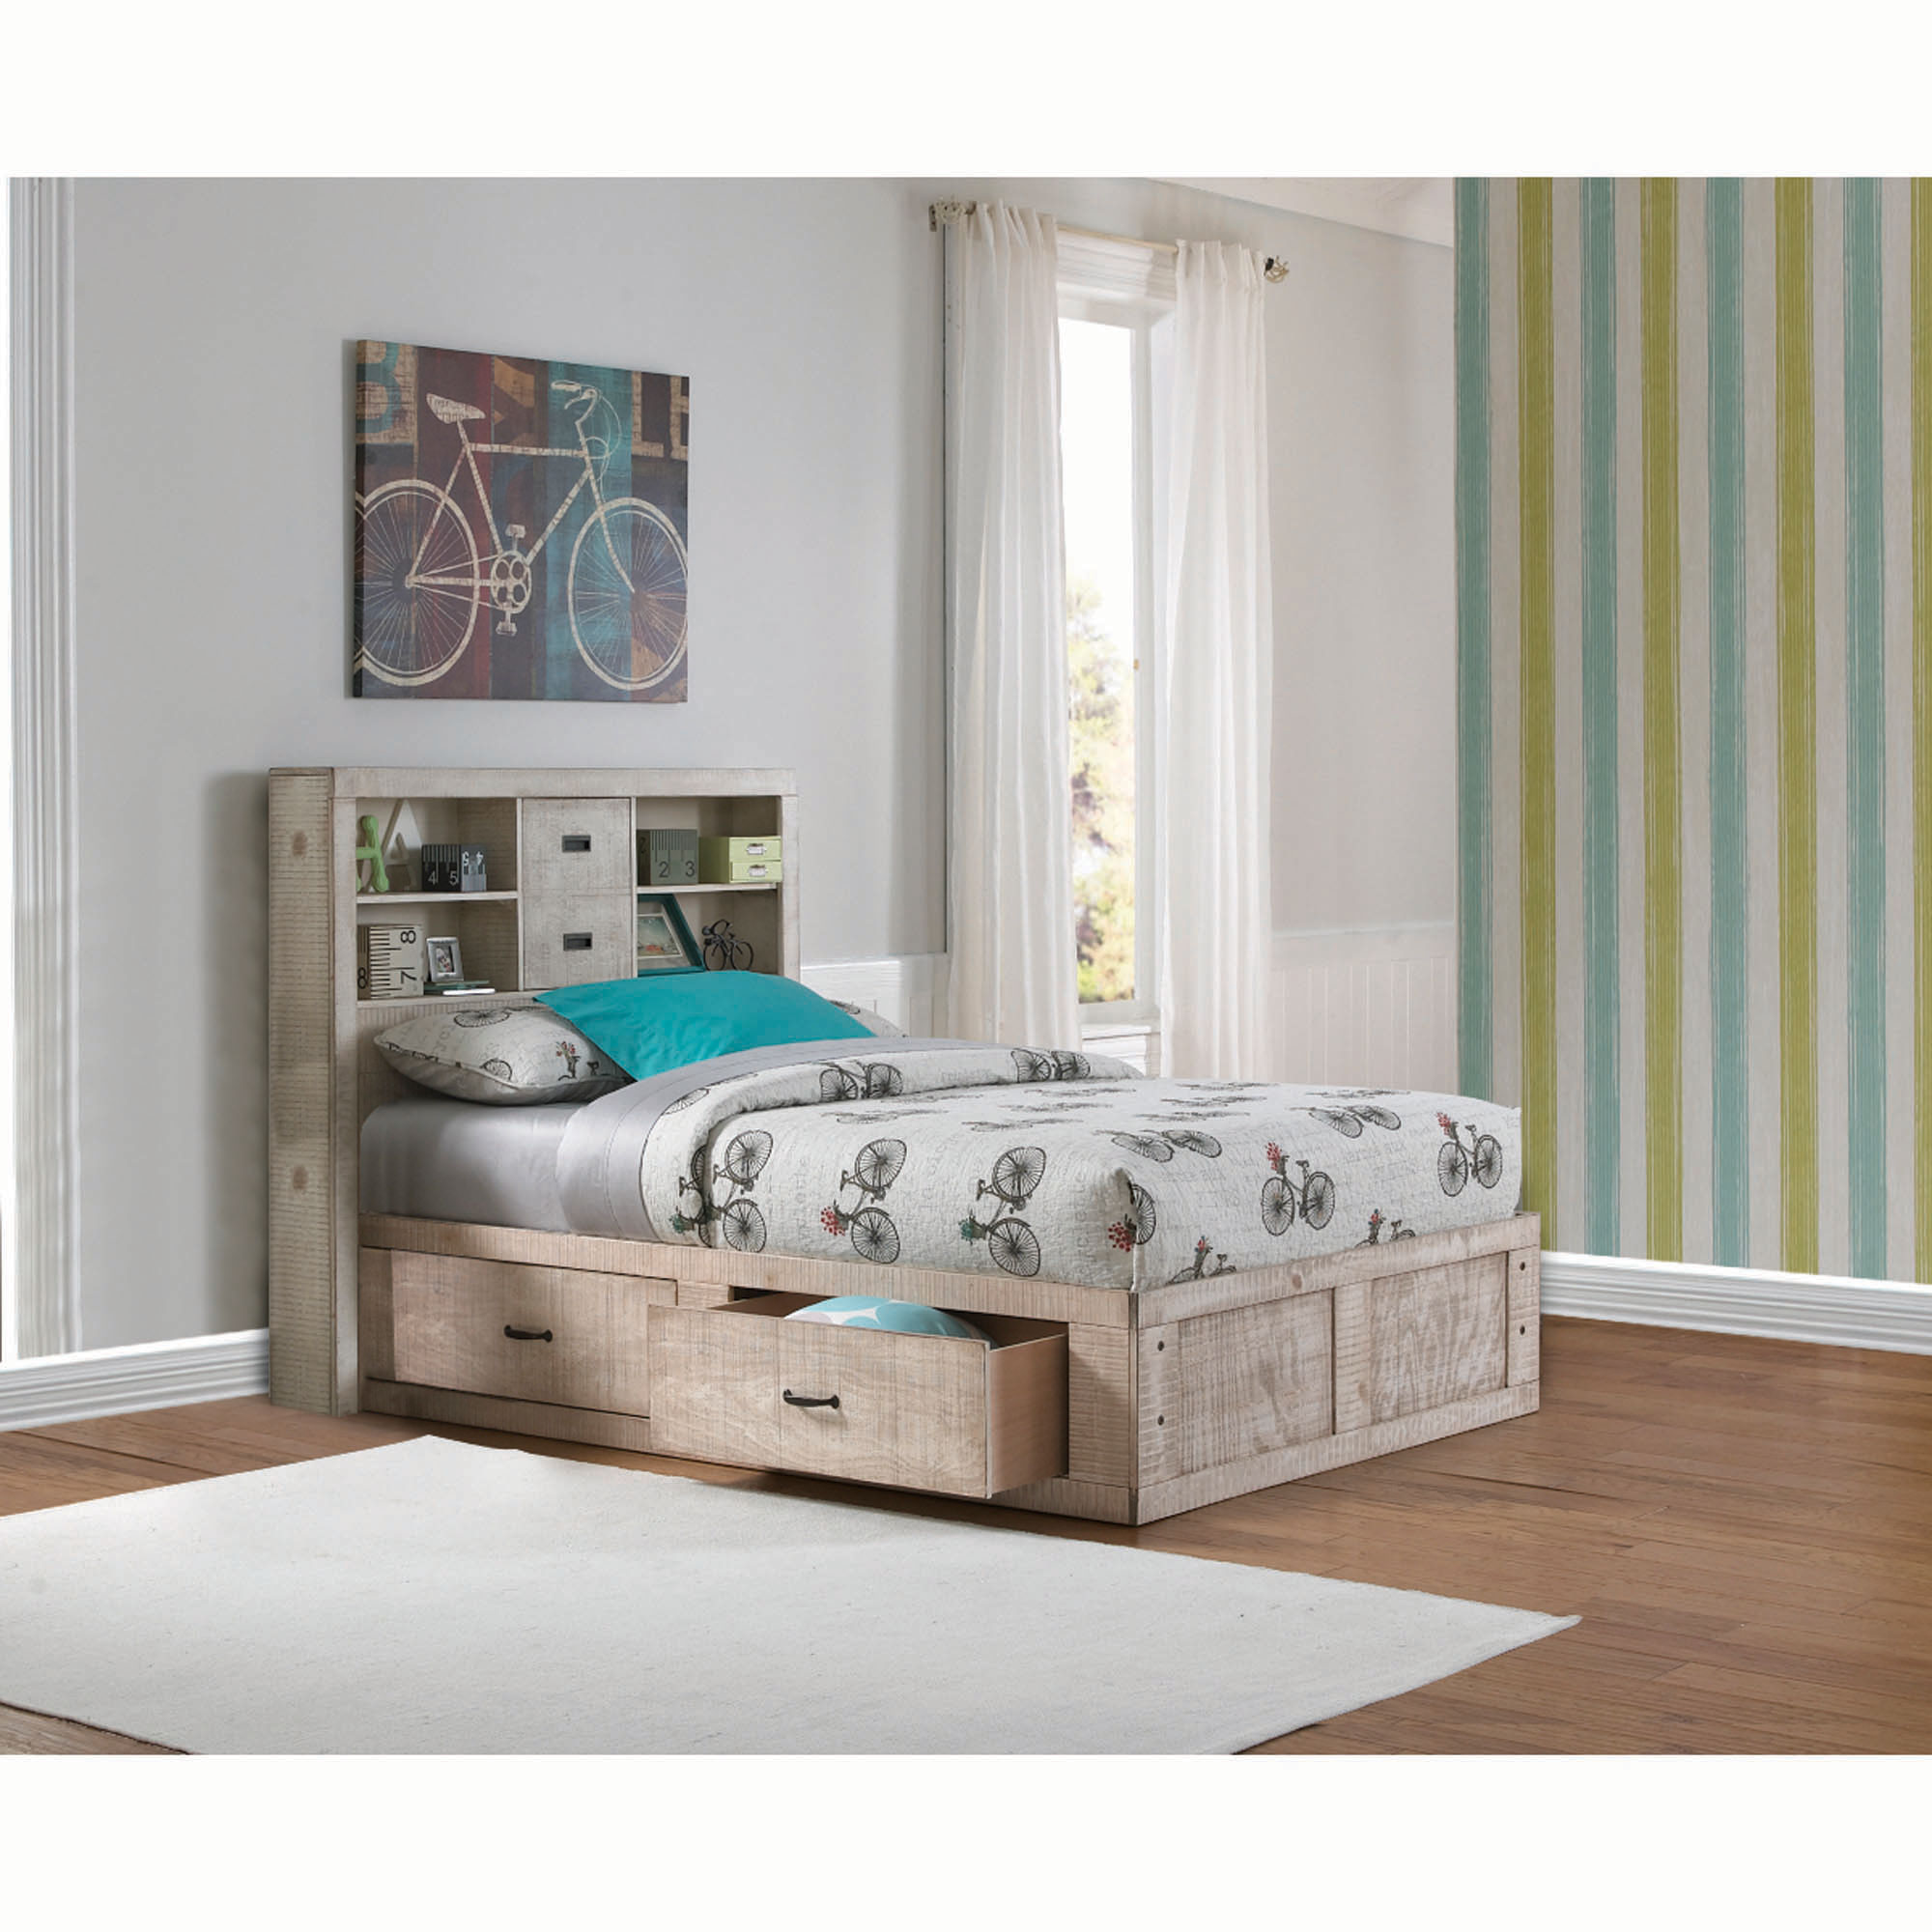 Rent To Own Oak Furniture West 6 Piece Captain S Youth Full Size Bed Mattress Set At Aaron S Today